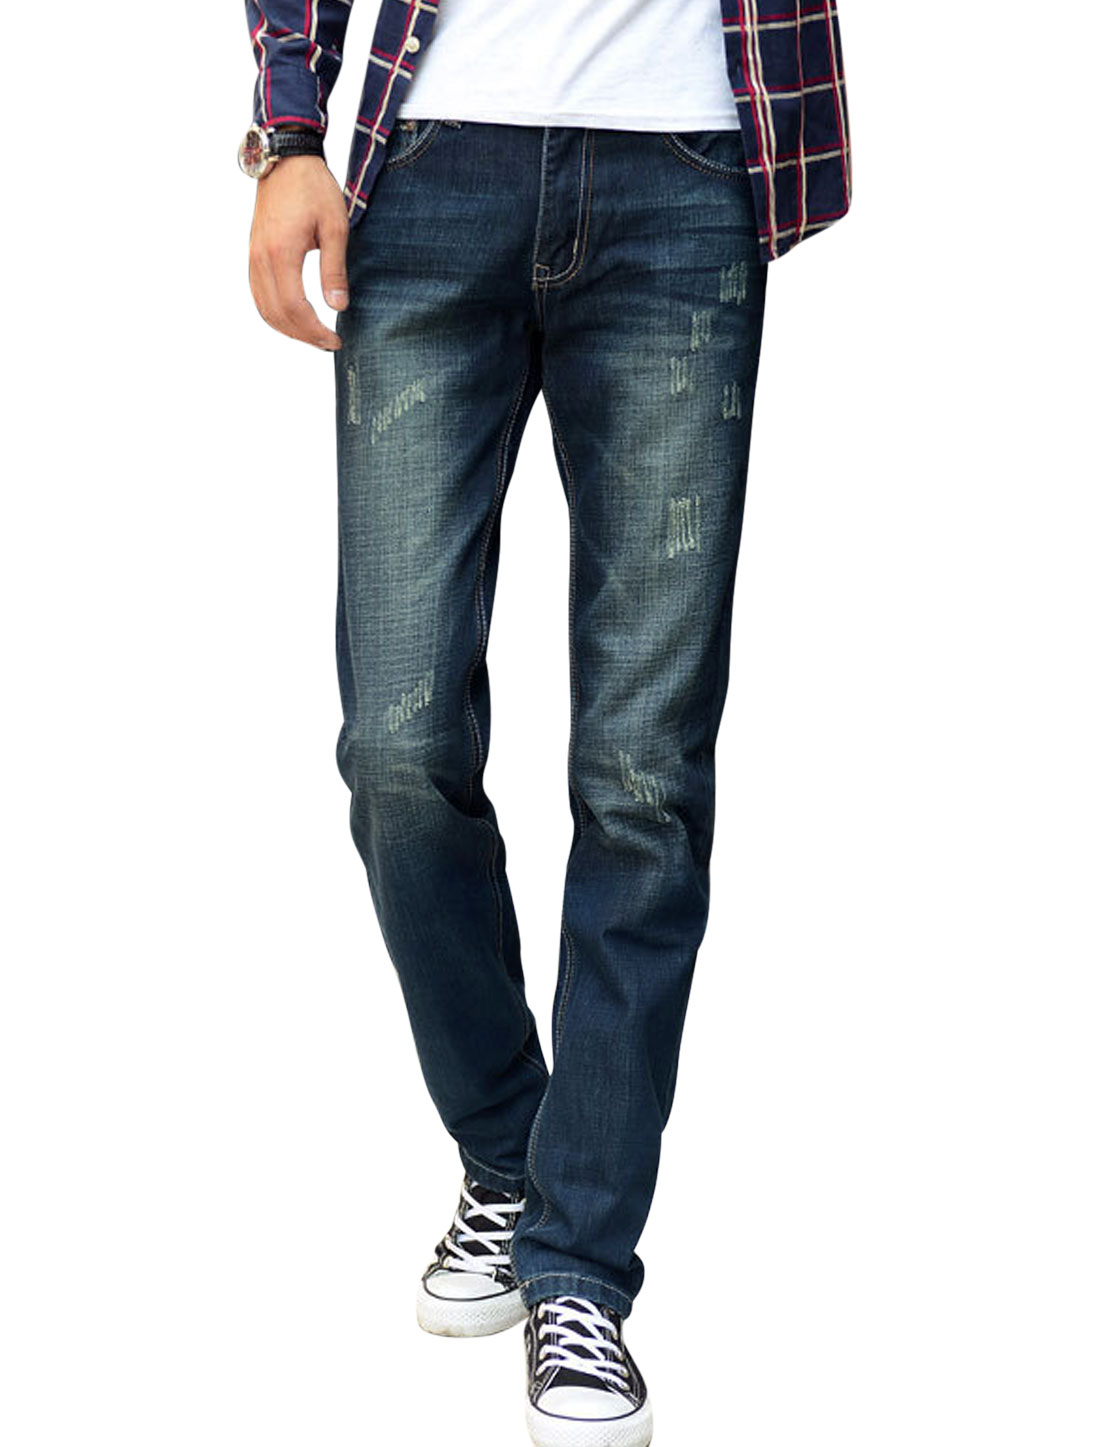 Men Natural Rise Two Back Pockets One Button Casual Jeans Navy Blue W34